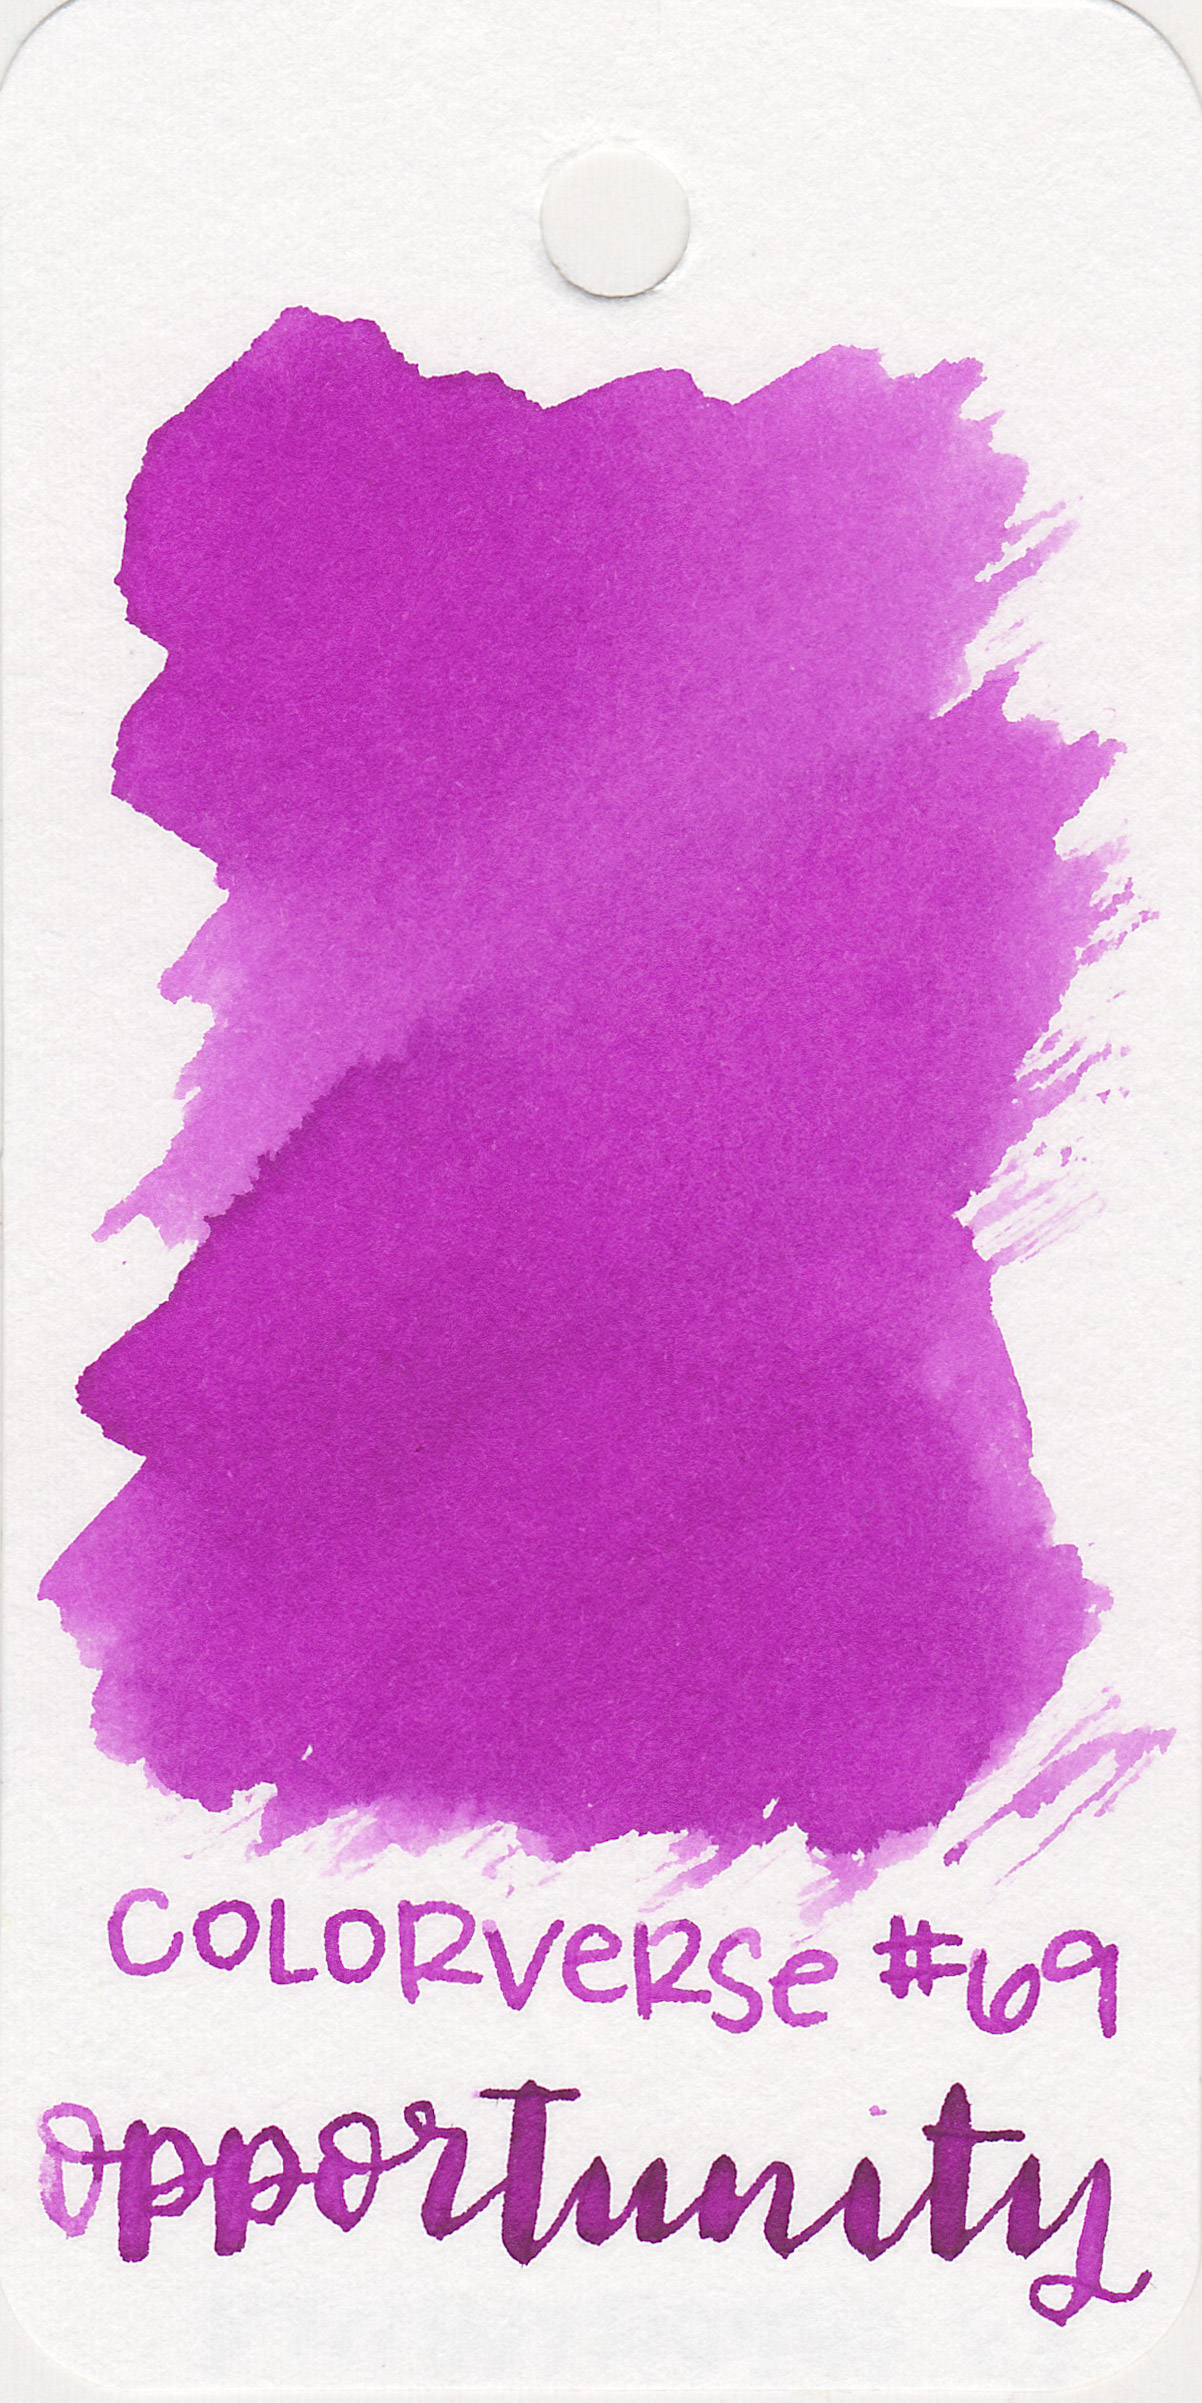 The color: - Opportunity is a bright magenta purple with a little bit of shading.